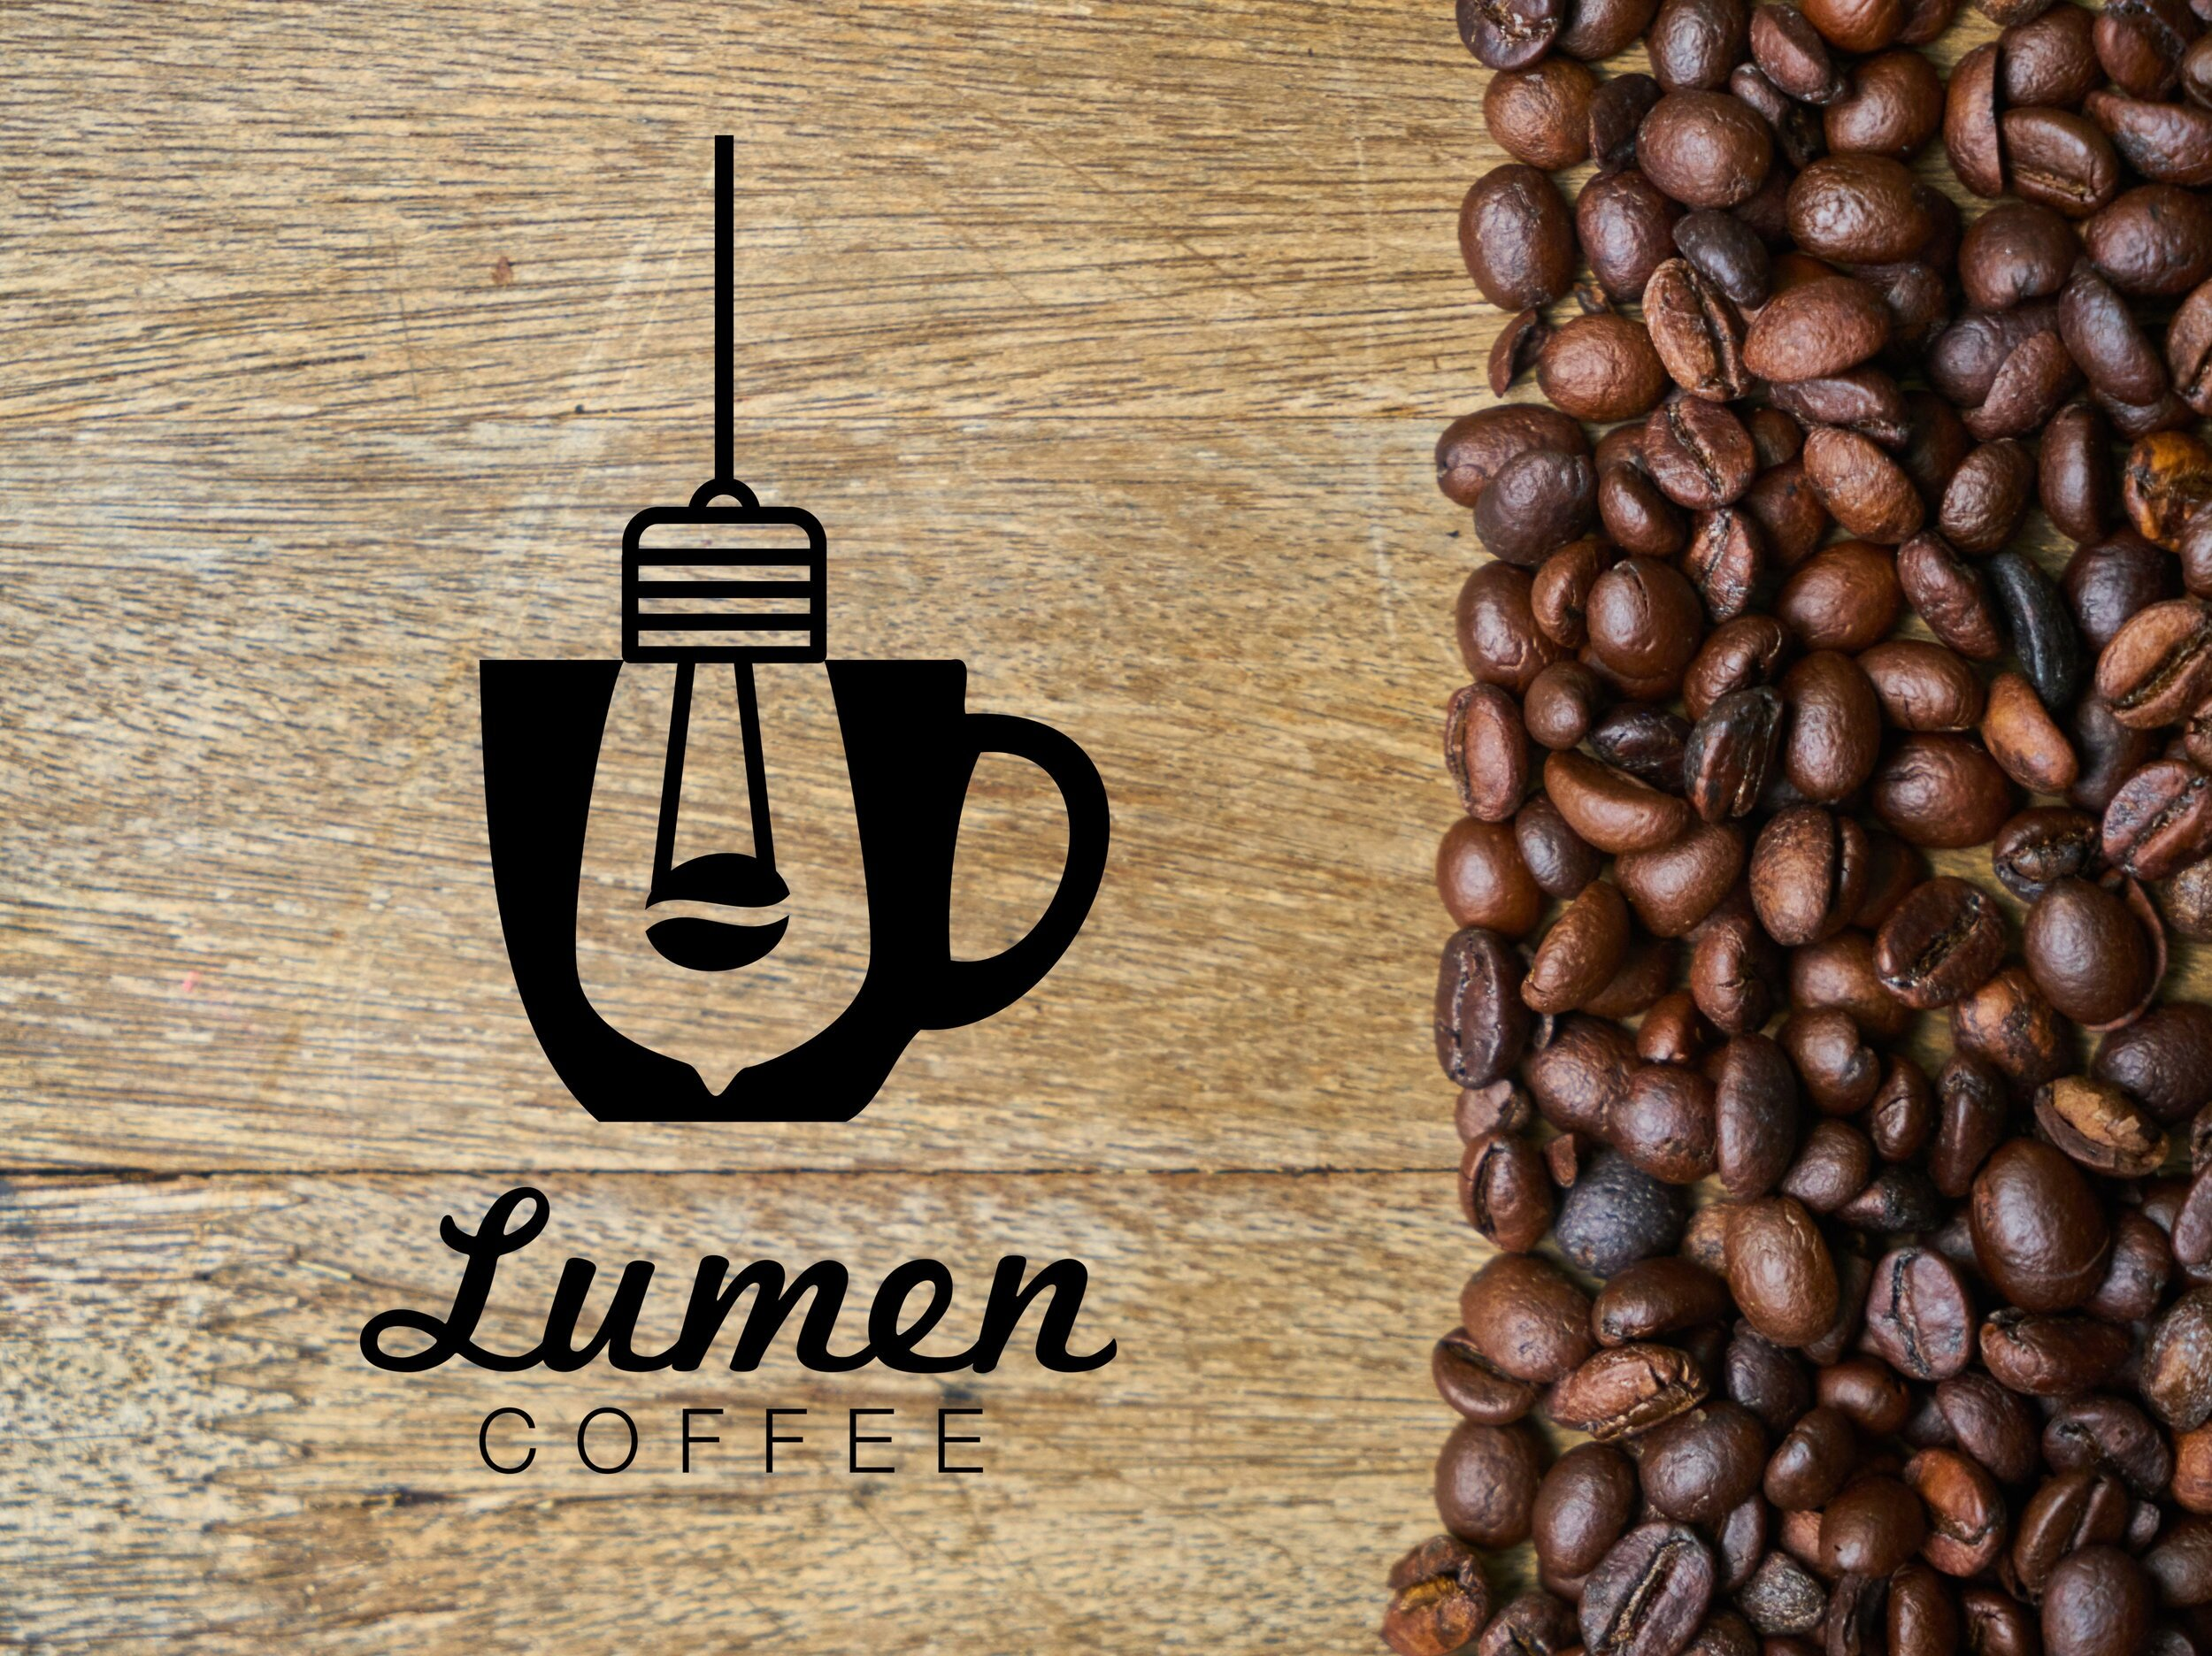 Welcome. - We are an independent coffee shop in Rochester, MN. Our focus as a family-owned business is to provide our community with convenient and ethically-sourced premium coffee.